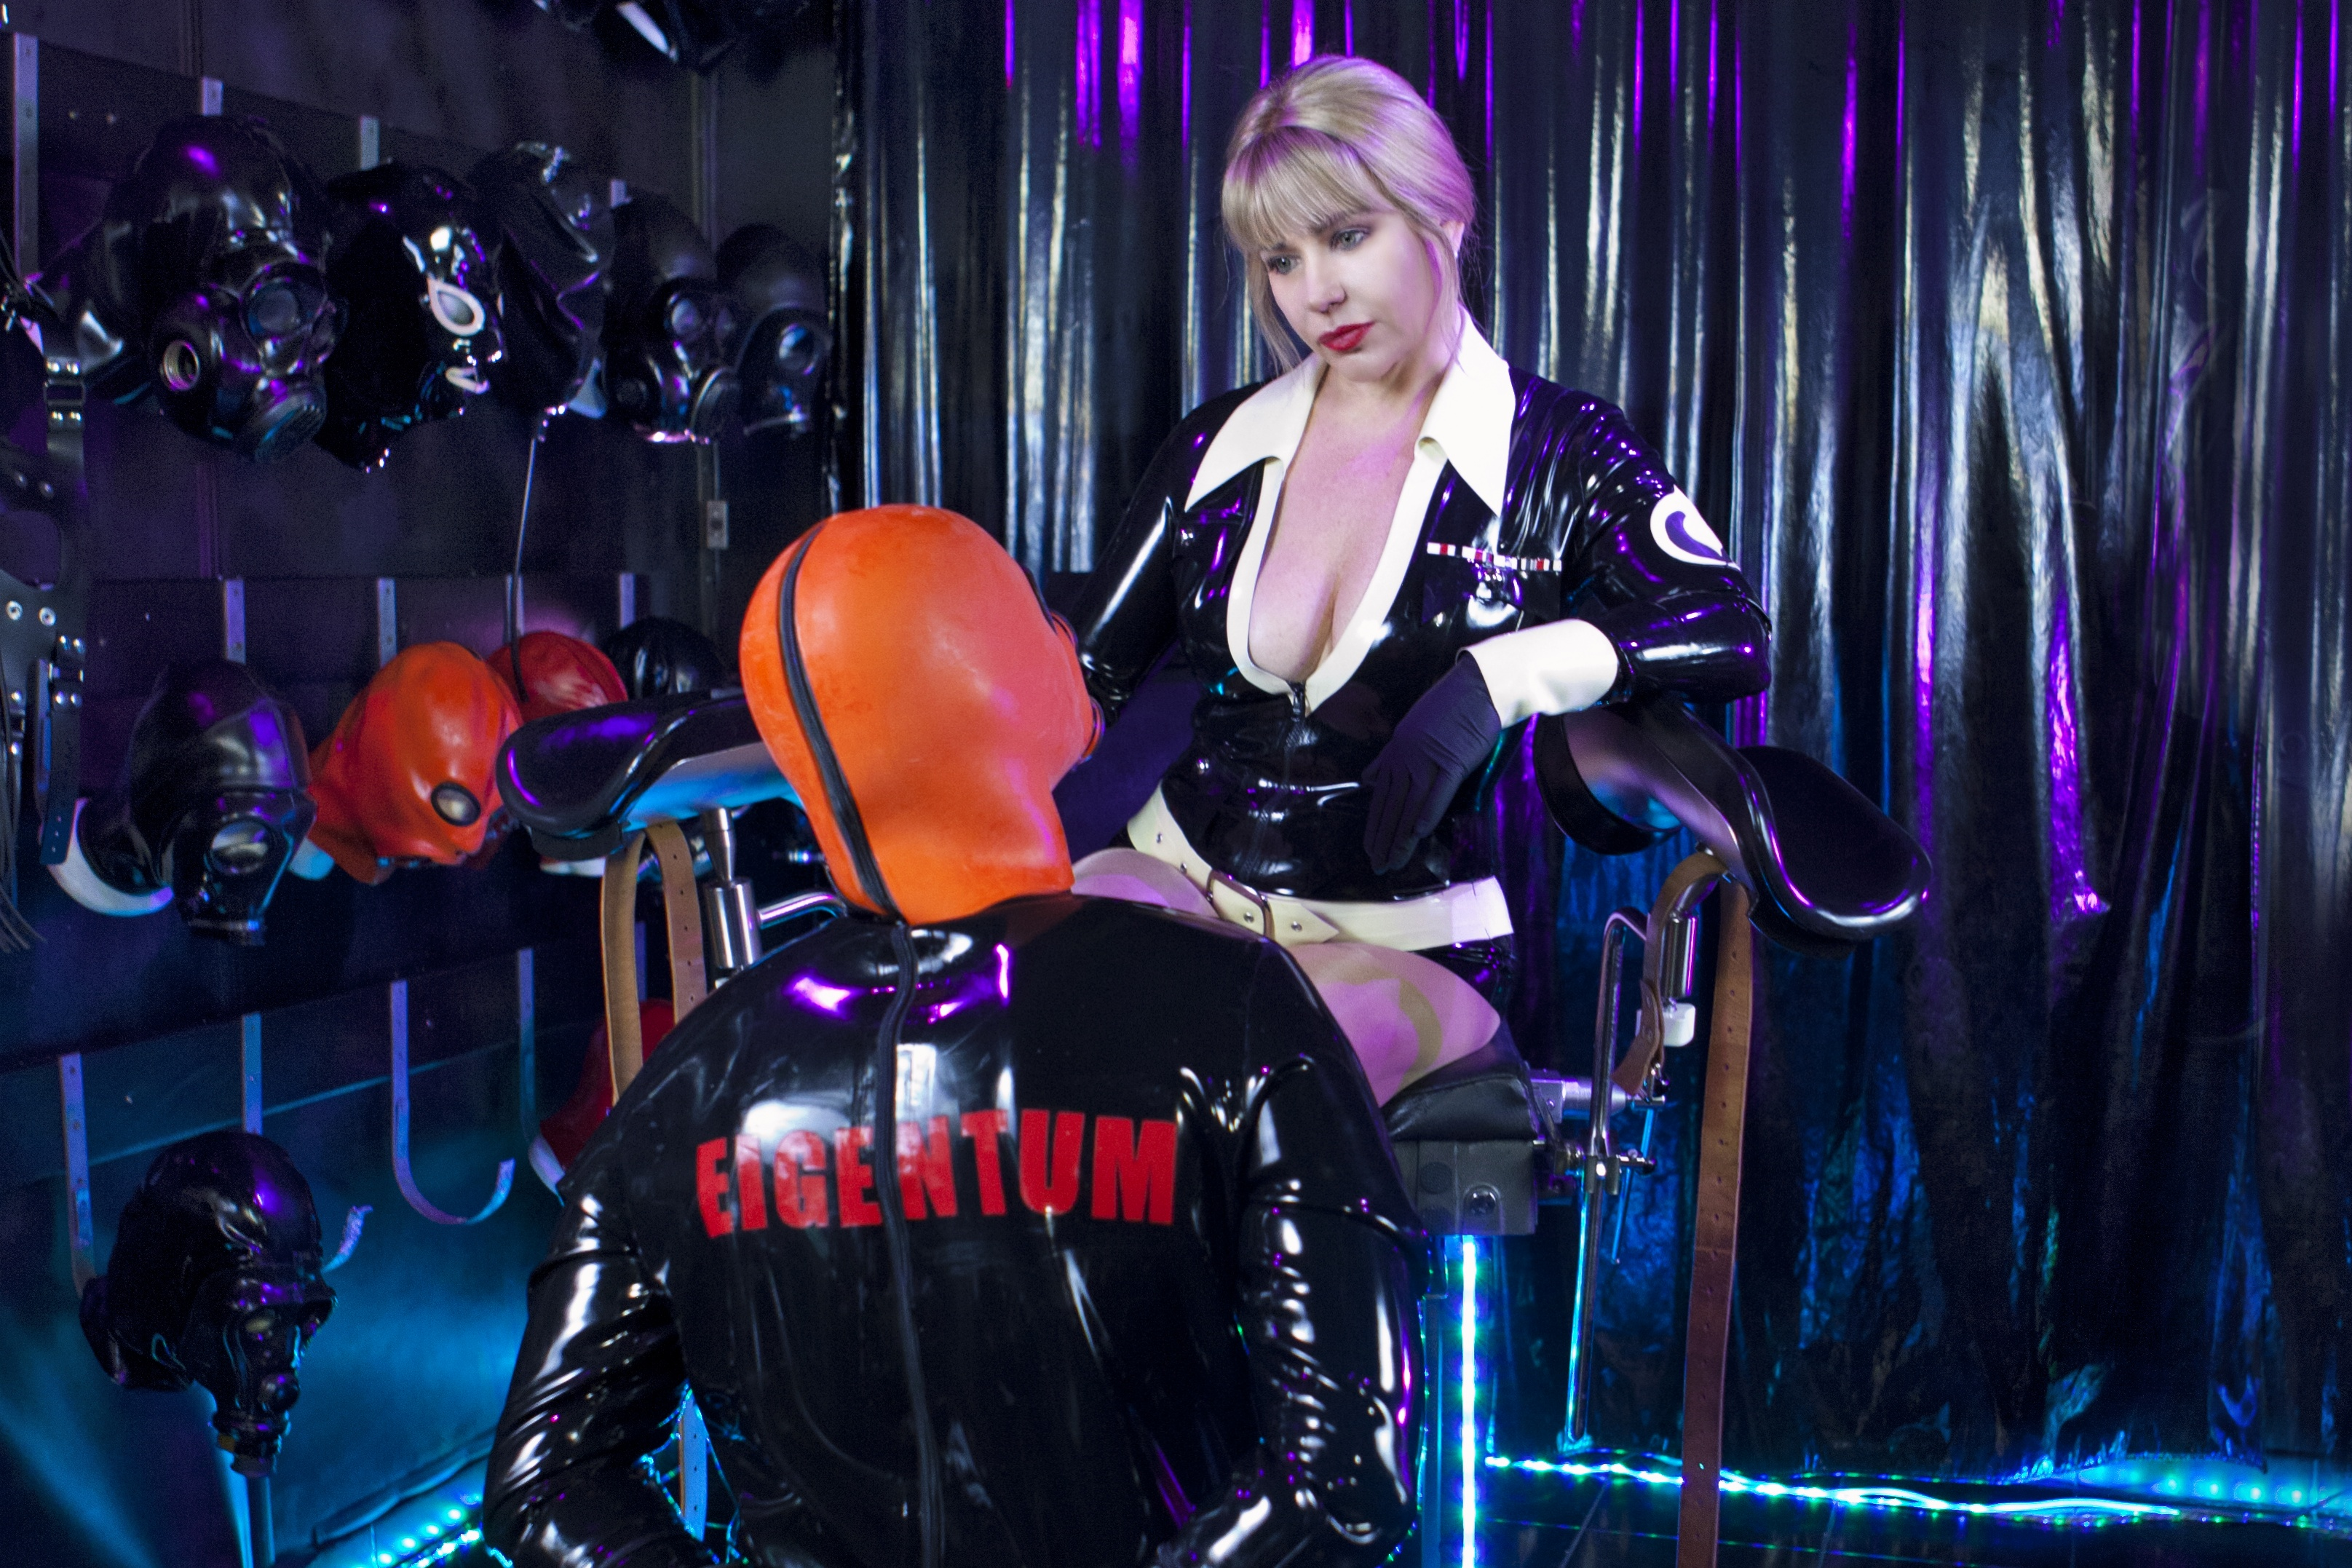 Sexy! herrin und sklave video thats